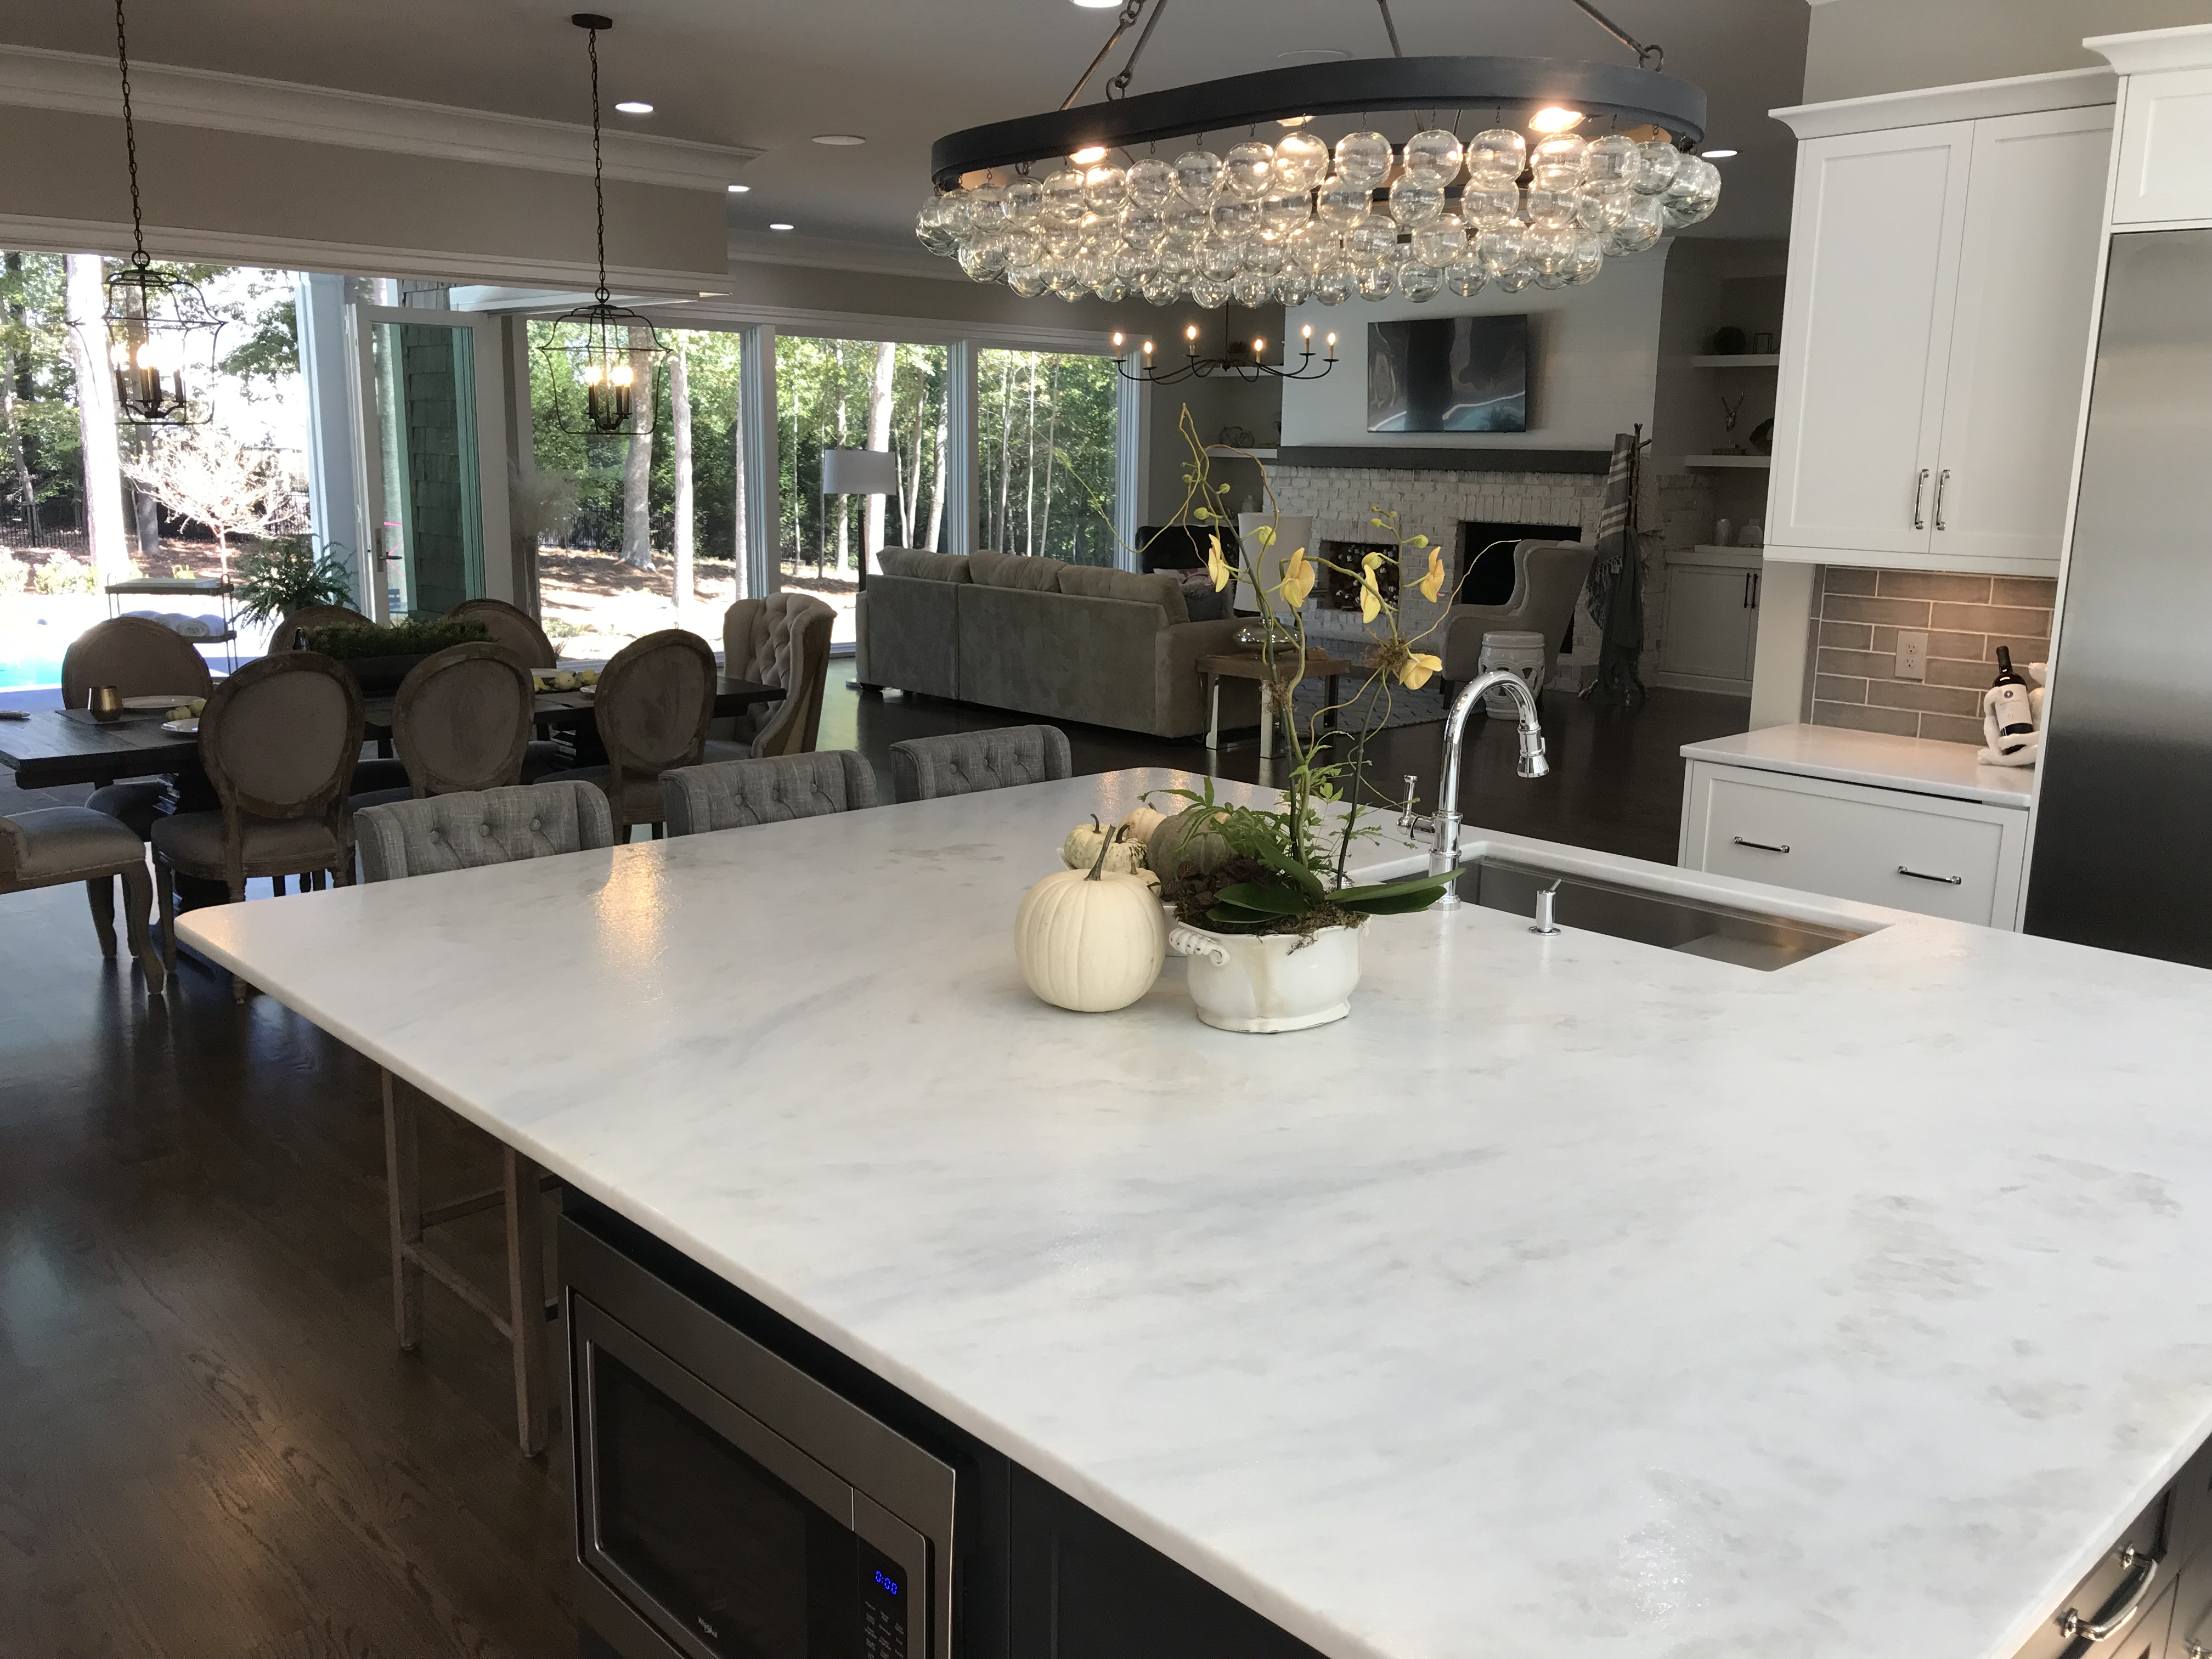 <div class='meta'><div class='origin-logo' data-origin='none'></div><span class='caption-text' data-credit='WTVD photo/Shawn Replogle'>Kitchen - 5149 Avalaire Oaks, Raleigh, NC - $1.9 million by KJ Construction</span></div>